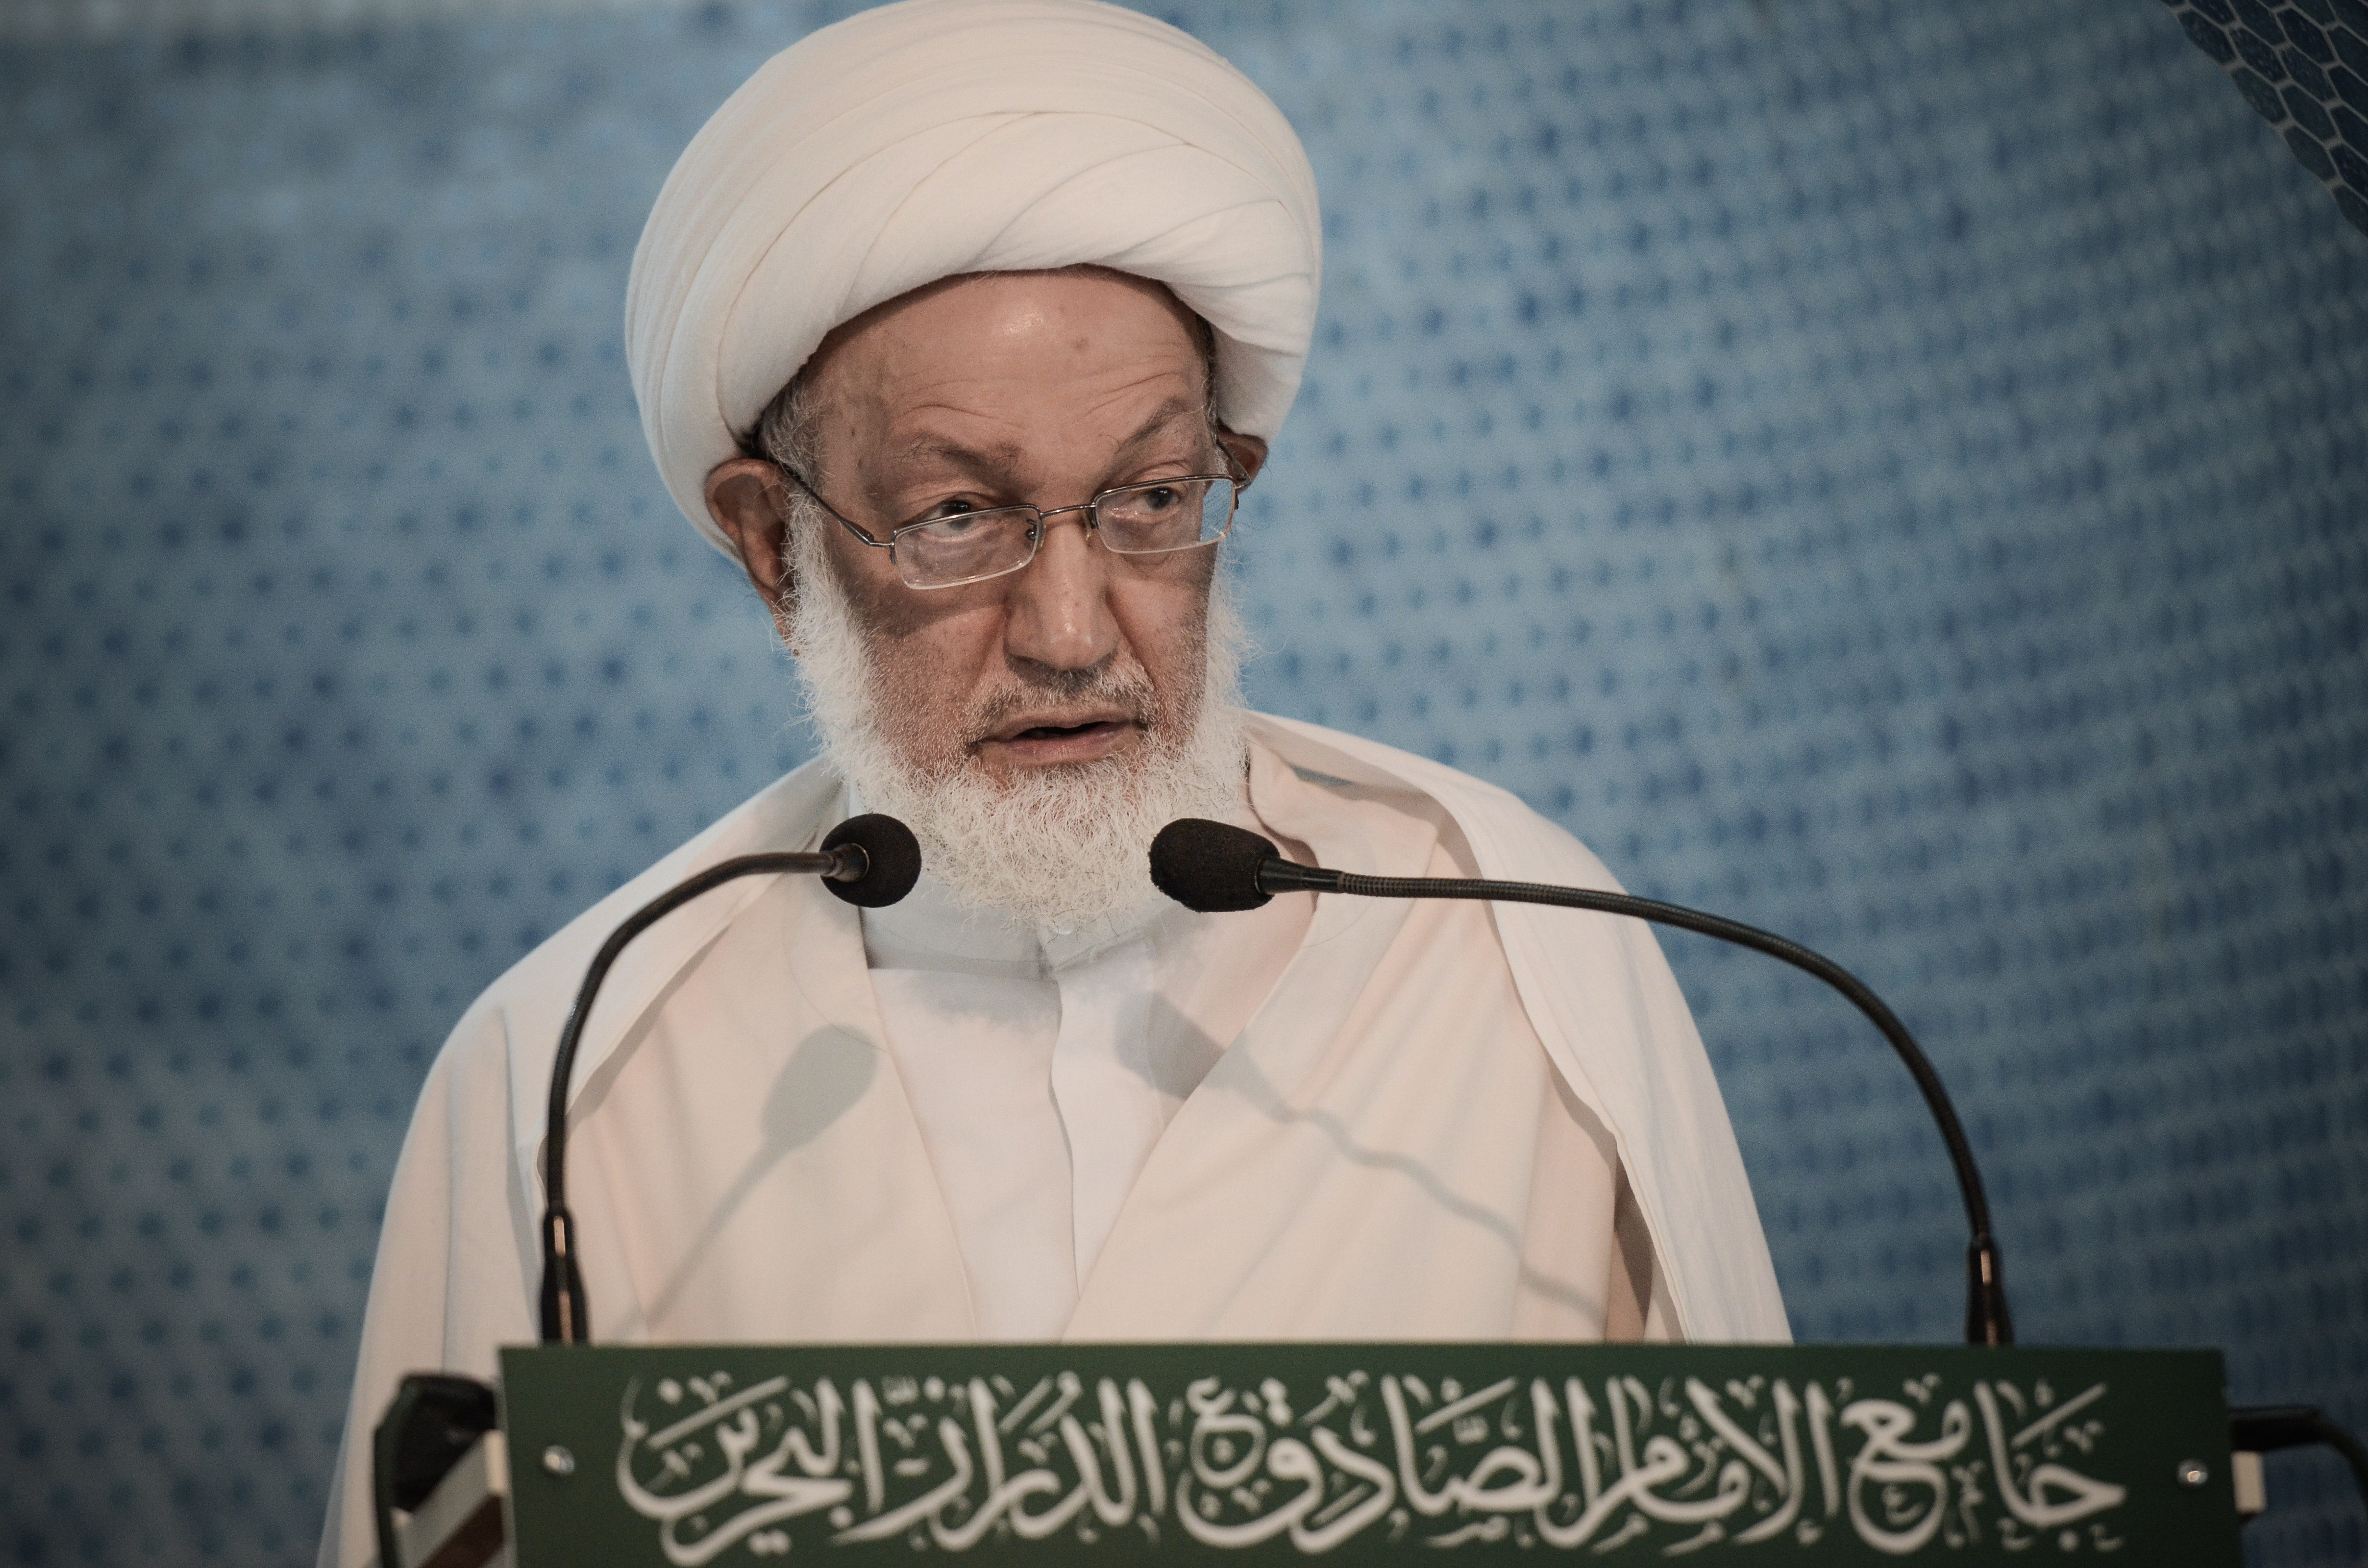 Bahraini top senior Shi'ite cleric, Sheik Isa Qassim, gives a speech to worshippers during Friday prayer at a mosque in the village of Diraz, west of Bahrain's capital Manama, on May 17, 2013